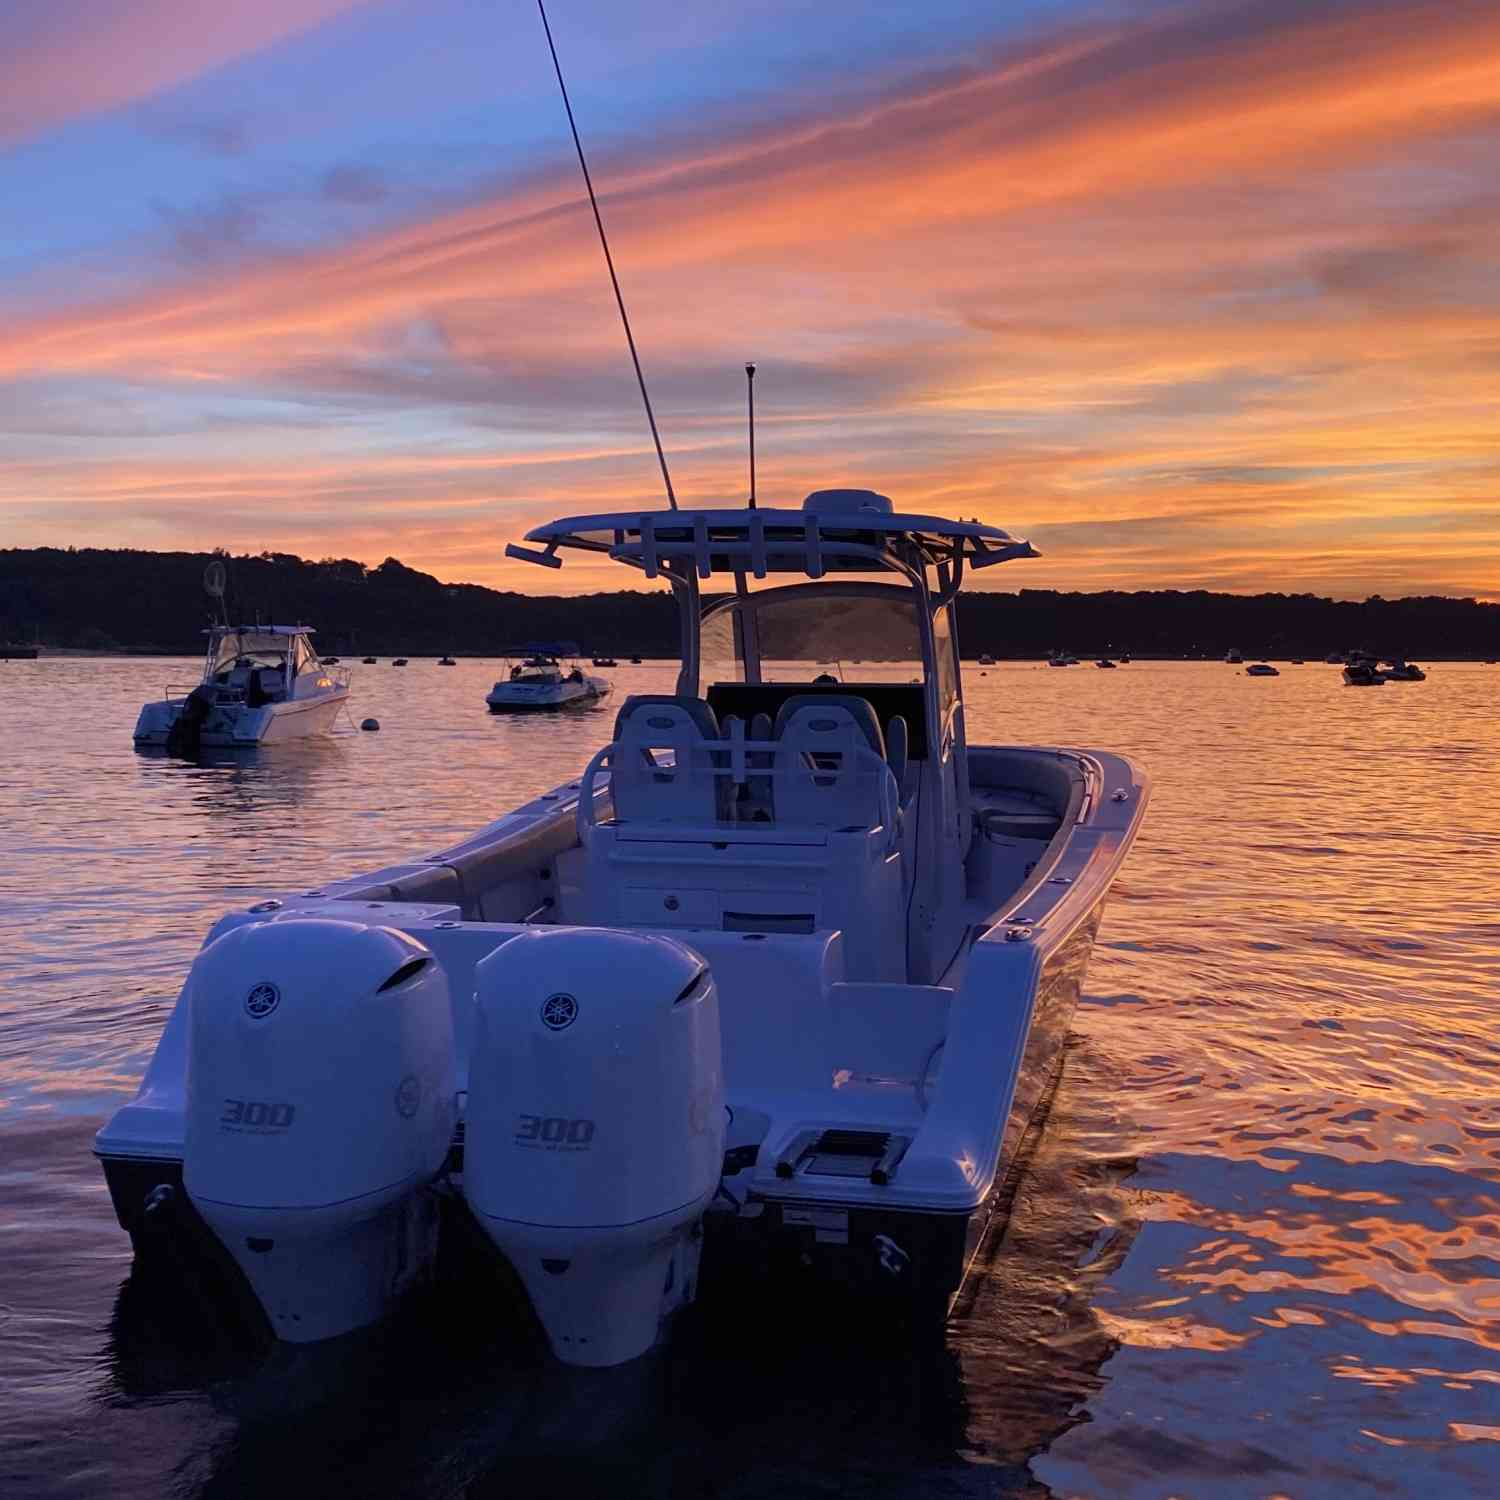 Title: Best sunset of the summer 2020 - On board their Sportsman Open 312 Center Console - Location: Cooper's bluff Oyster Bay NY. Participating in the Photo Contest #SportsmanSeptember2020